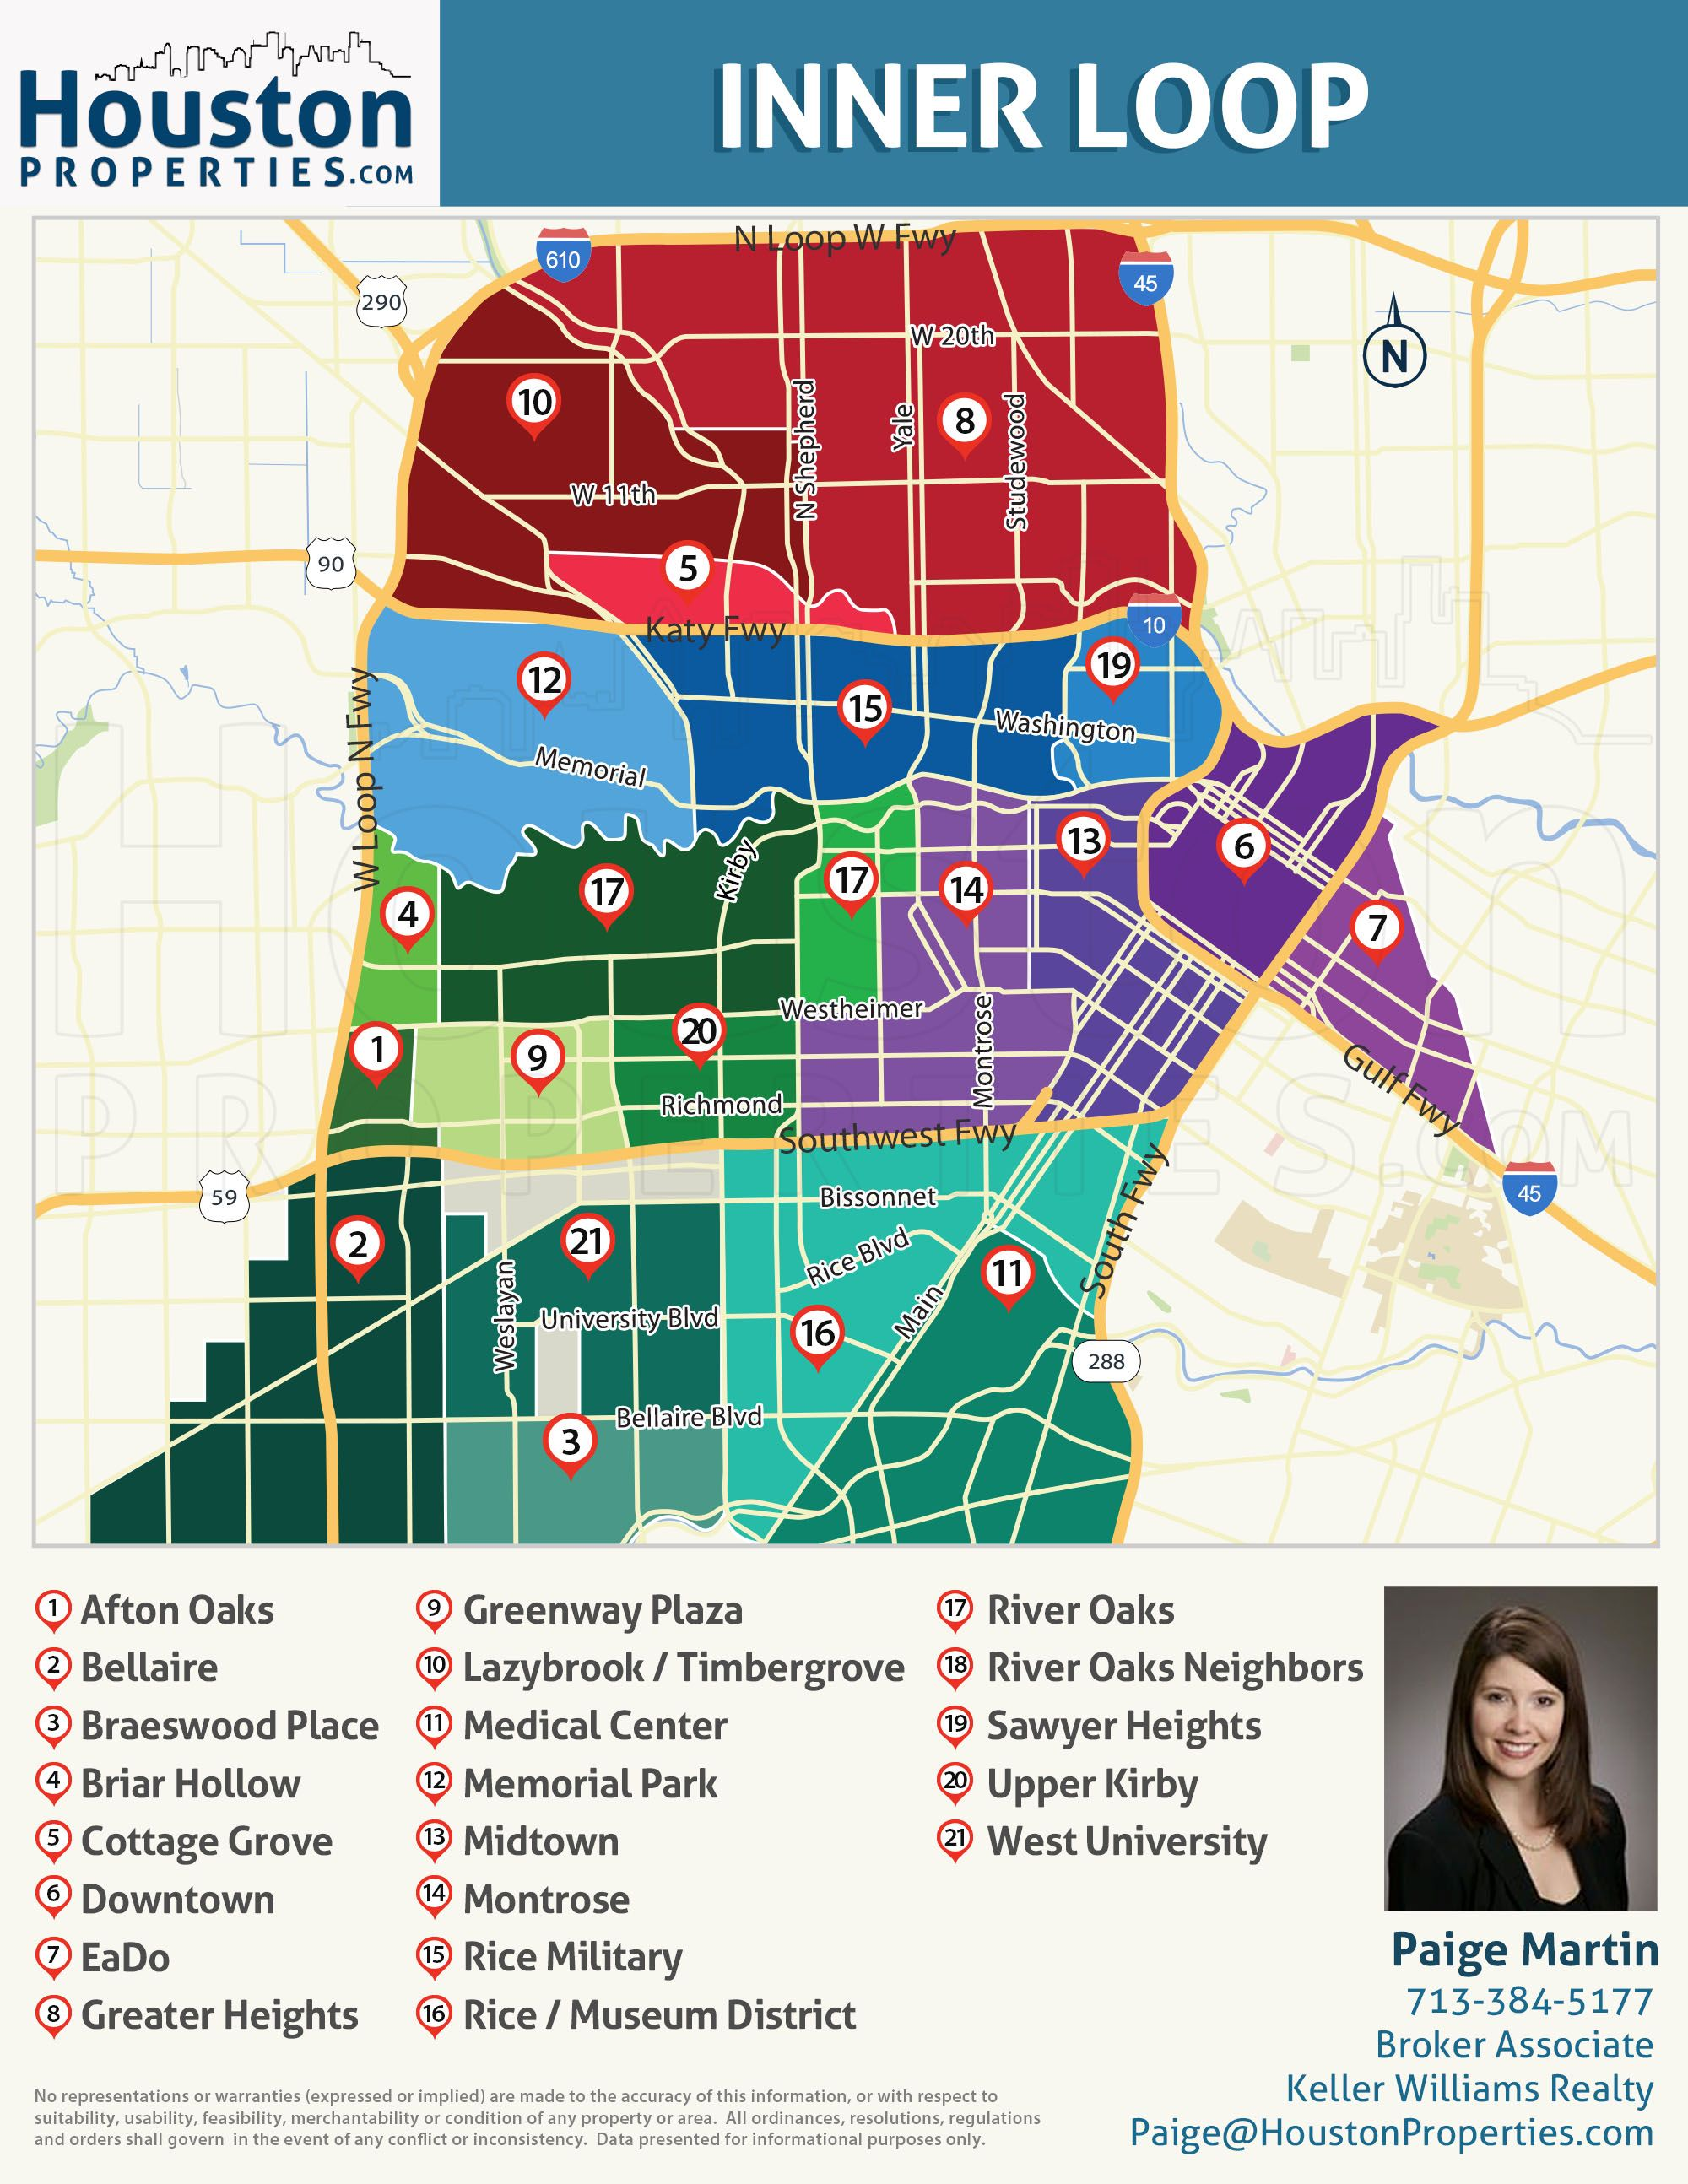 14 Best Inner Loop Houston Neighborhoods | Real Estate Trends | work Zip Code Map Houston Tx Area on zip codes map houston 77083, zip map 77090, zip codes by map of houston texas, zip codes houston map view, map of temple tx area, map of dallas fort worth tx area, zip codes by city california, map of roanoke va area, map of pharr tx area, zip codes in houston, map of greater houston area,